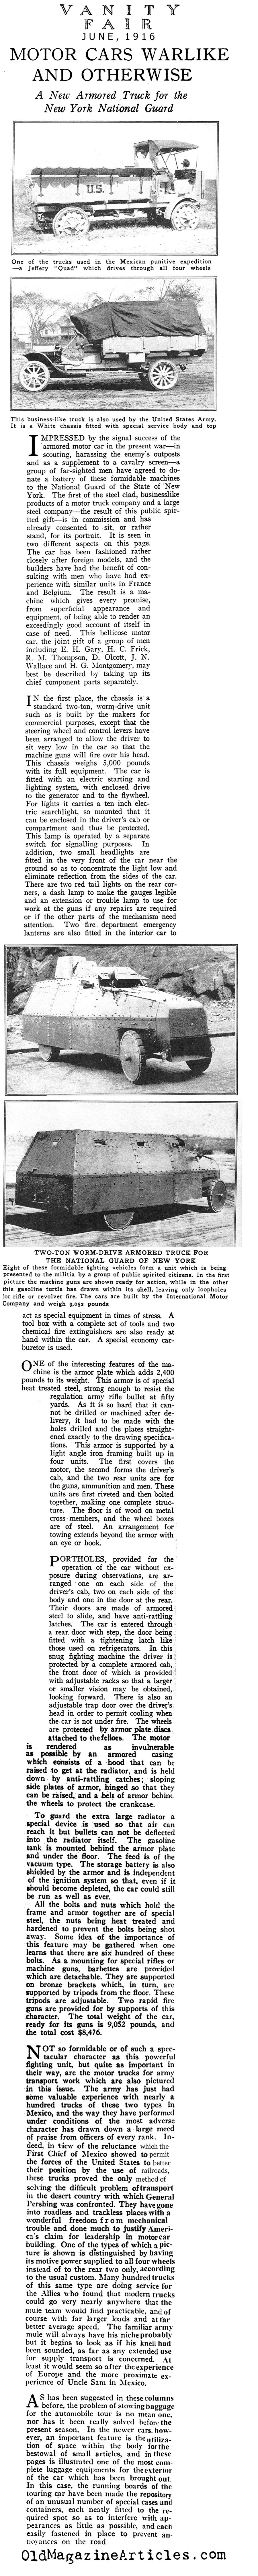 American Trucks & Armored Cars  (Vanity Fair Magazine, 1916)